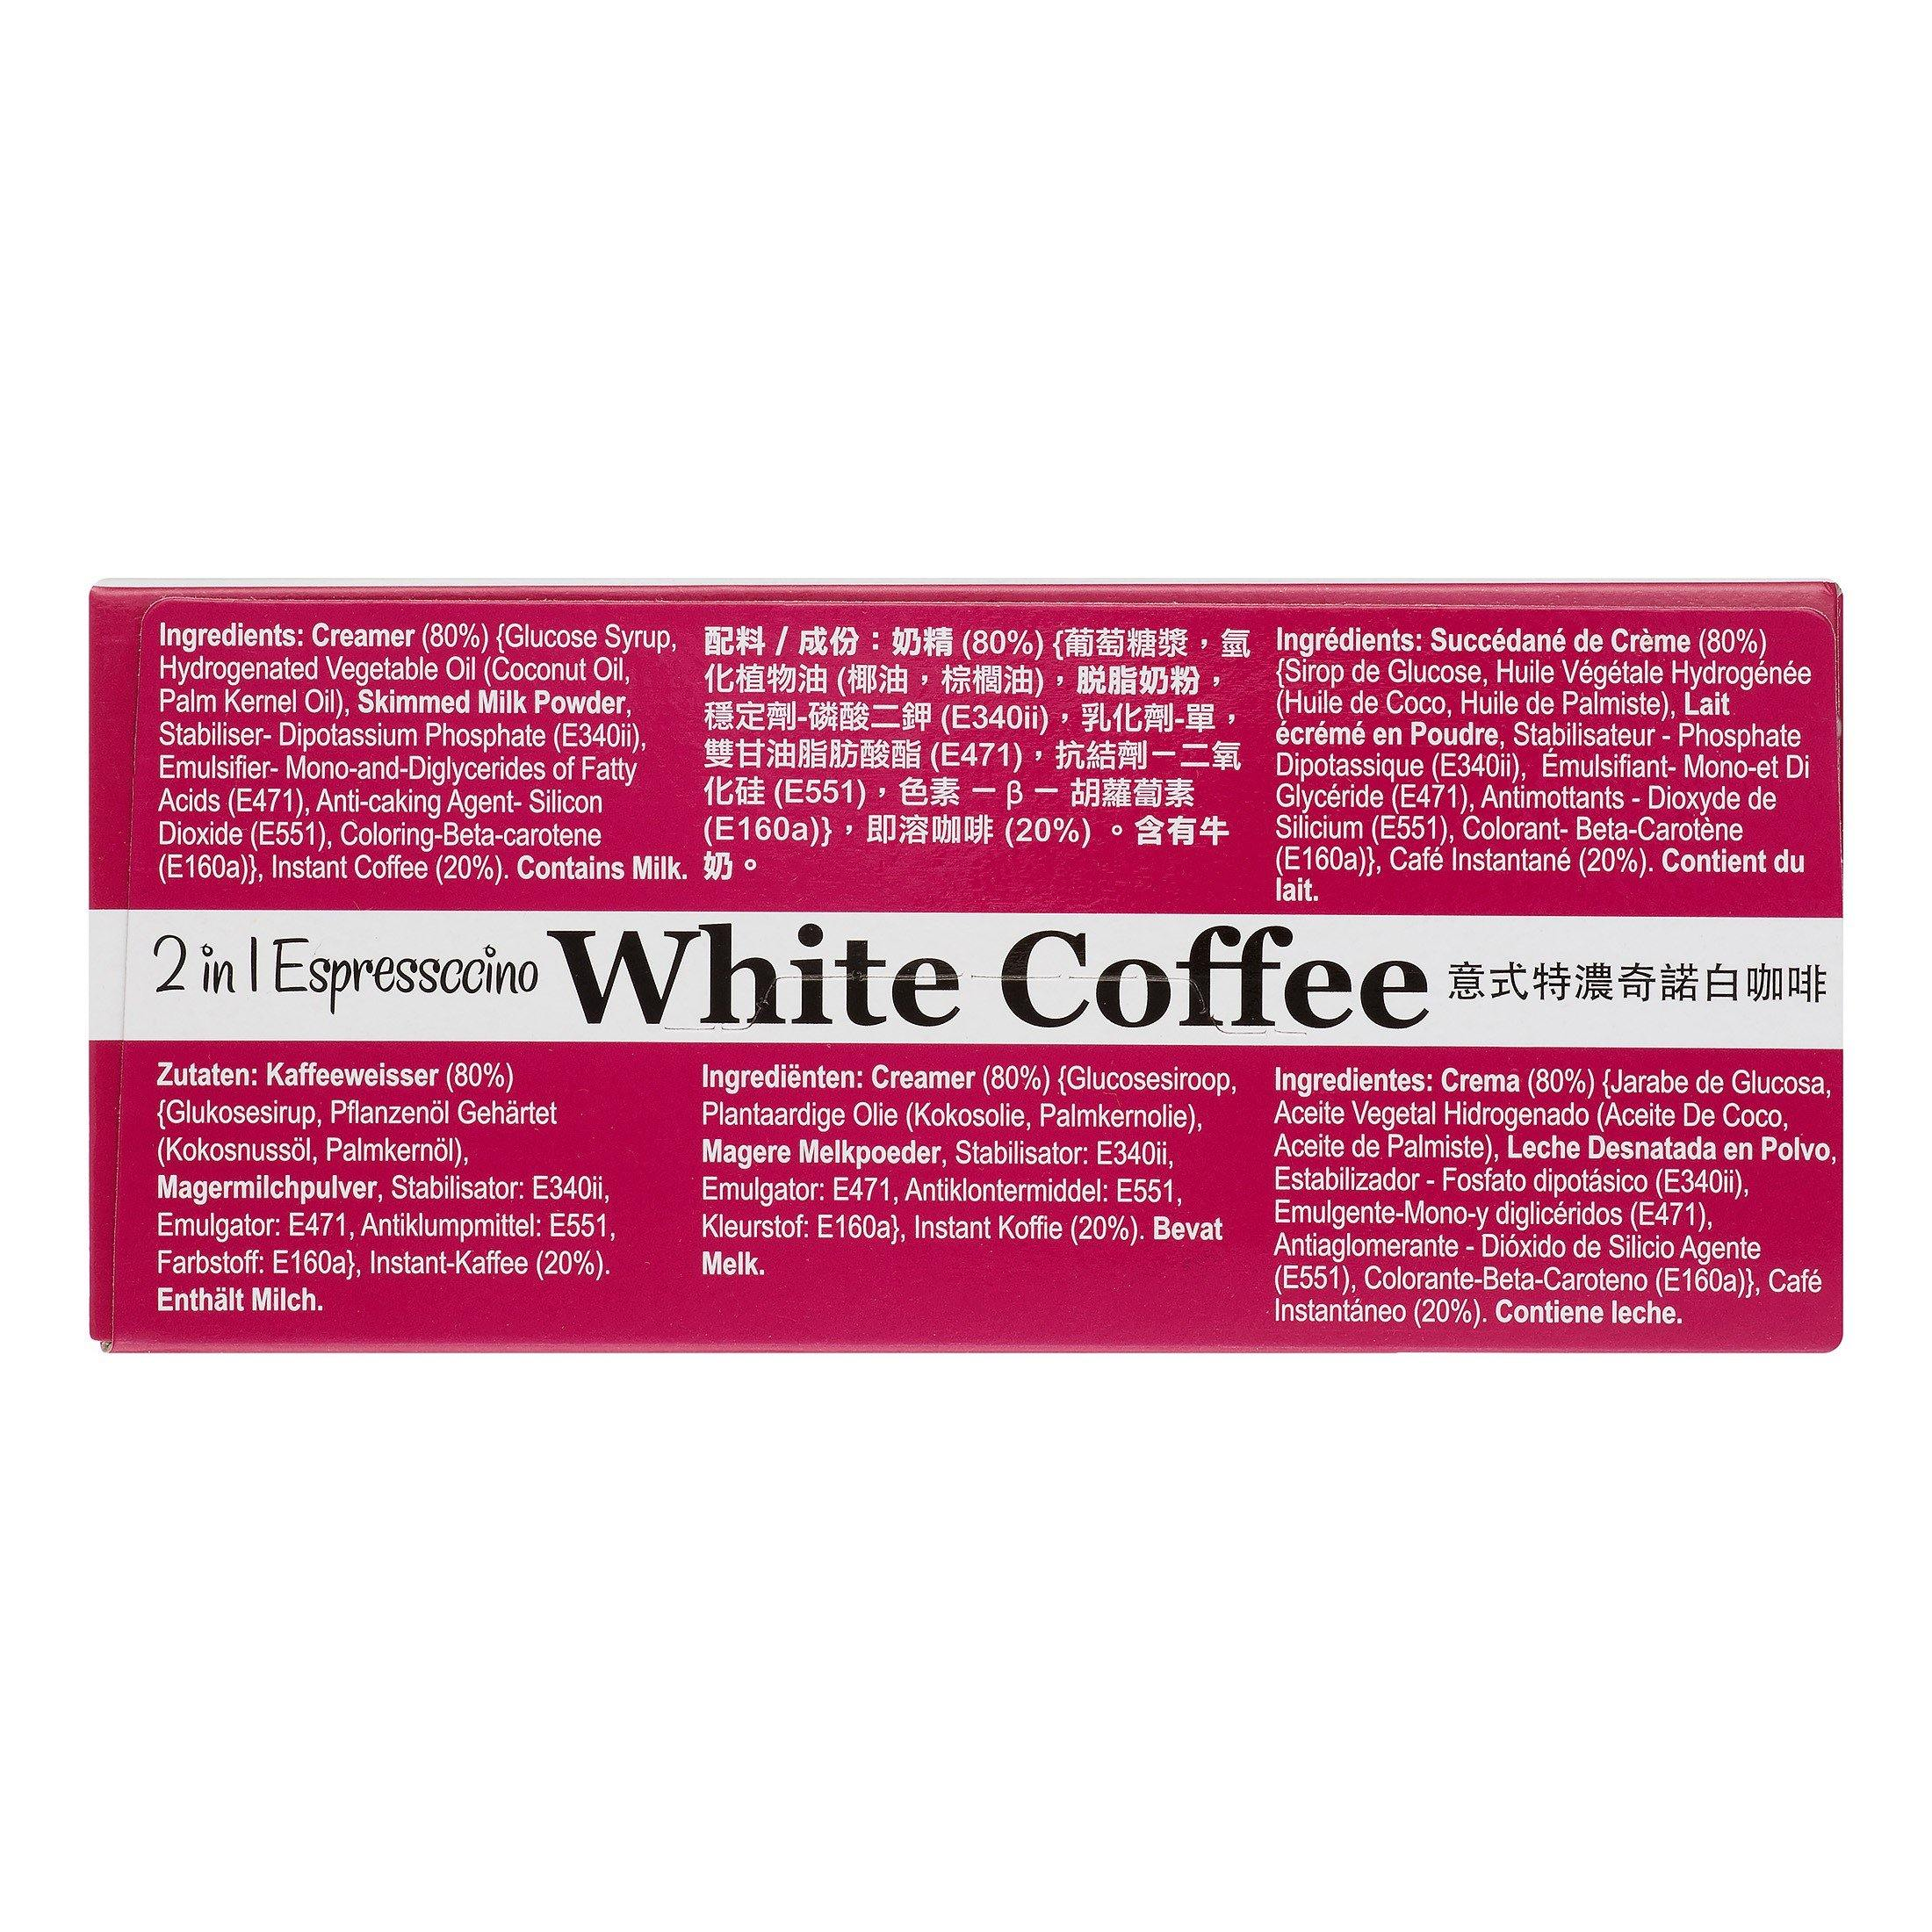 Gold Kili 2 in 1 Espressccino White Coffee 6.3 Oz (180 g) - 金麒麟2in1意式特濃奇諾白咖啡10包入6.3 Oz